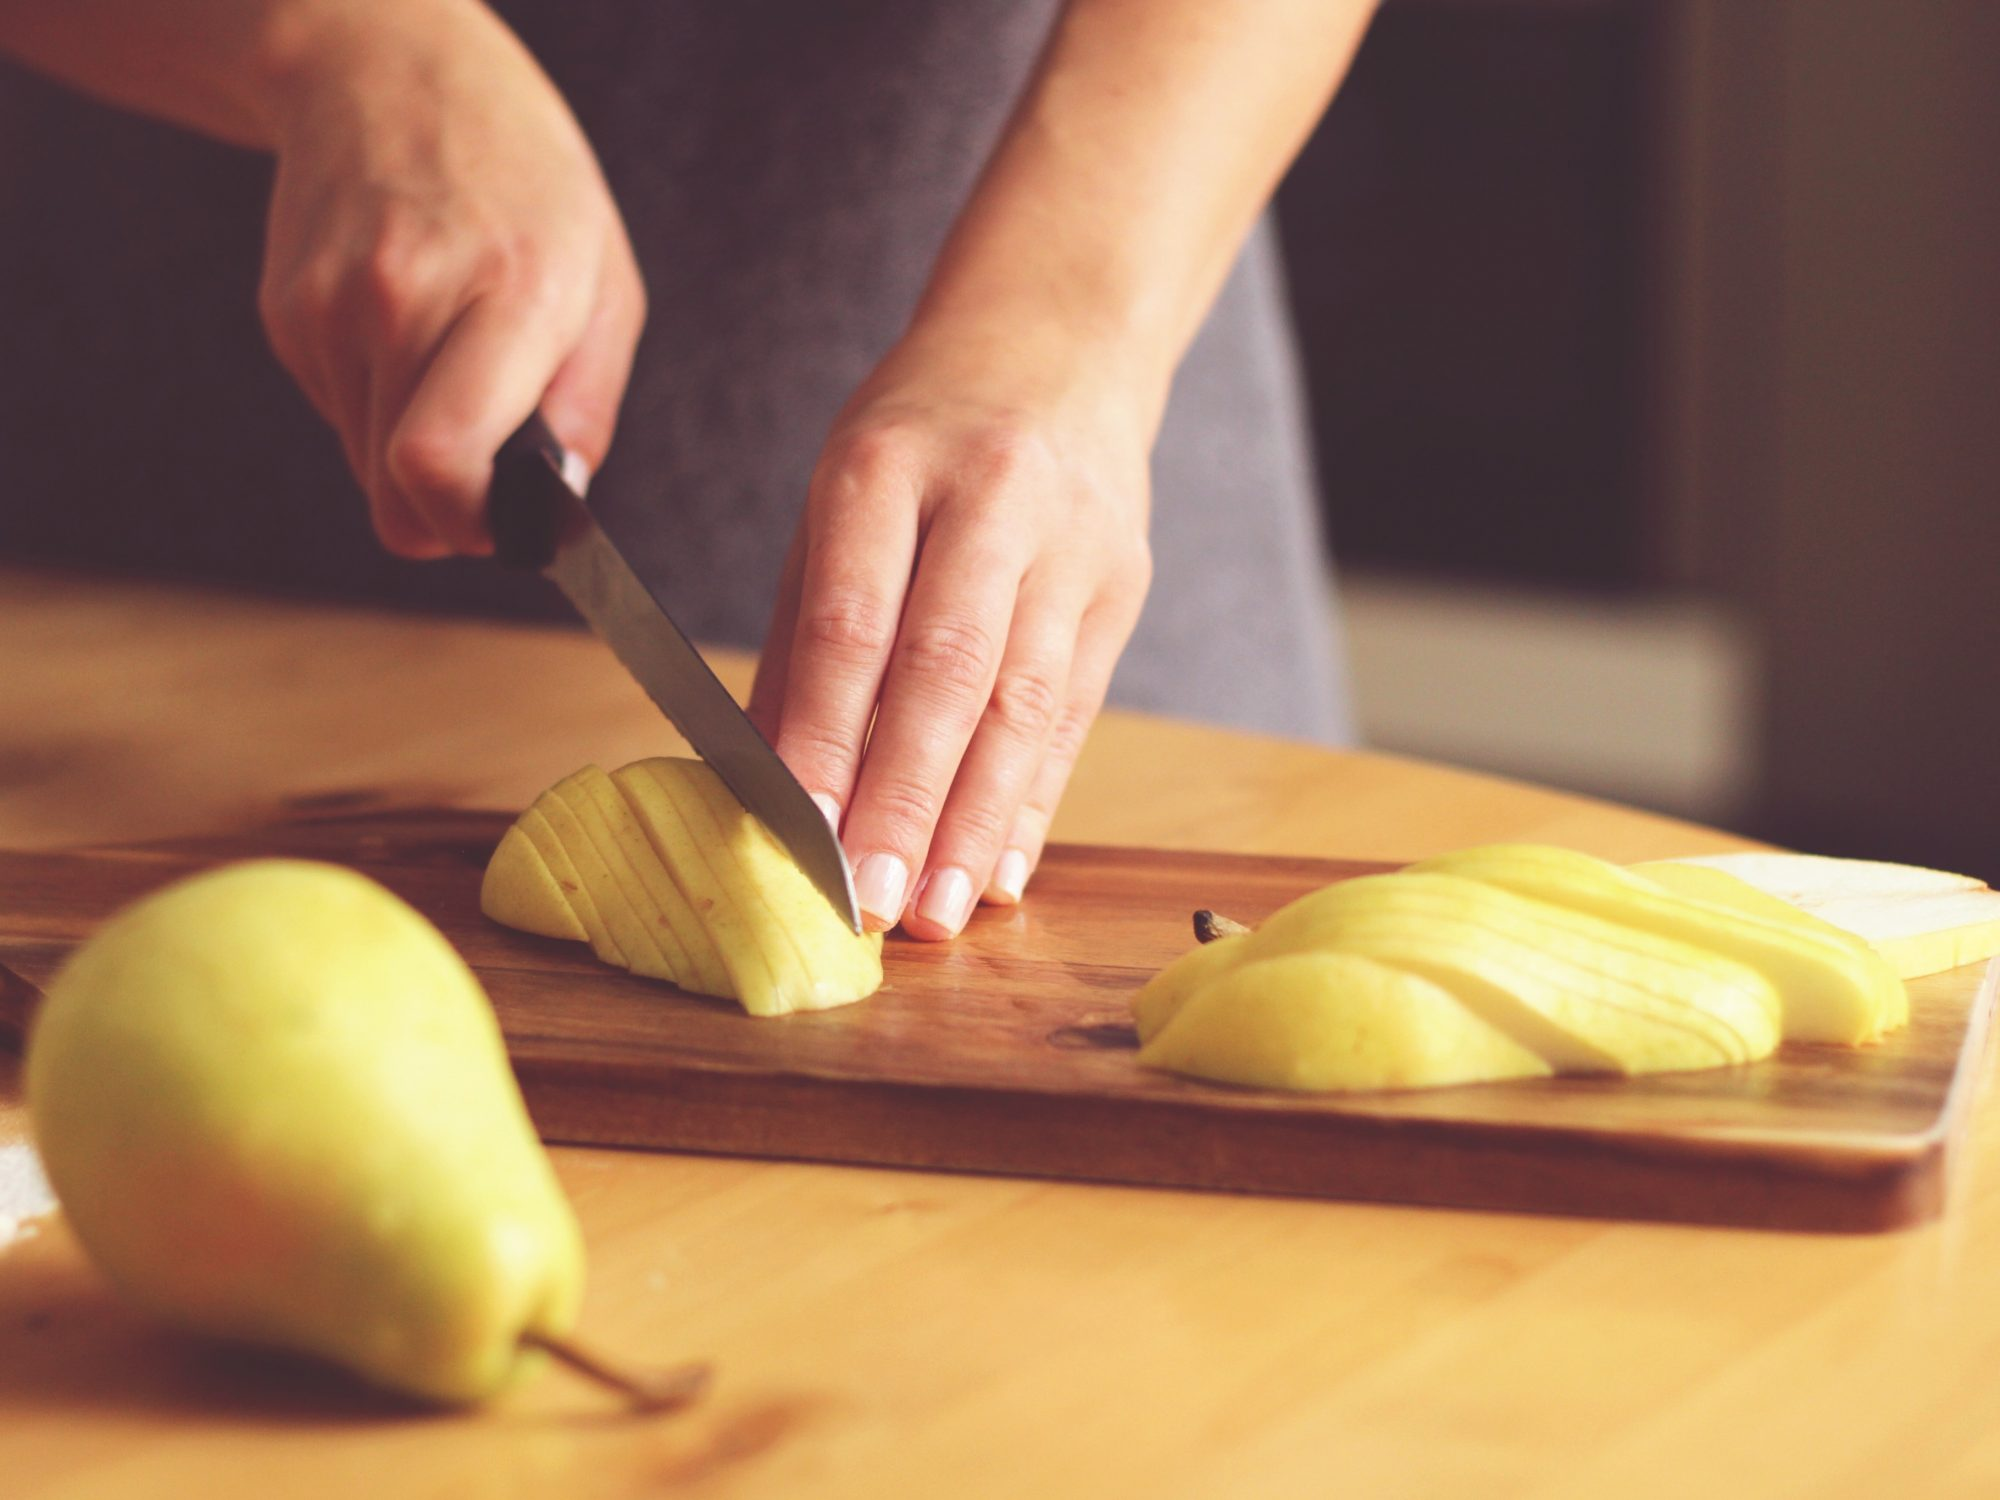 Woman Chopping Pear With Knife On Cutting Board